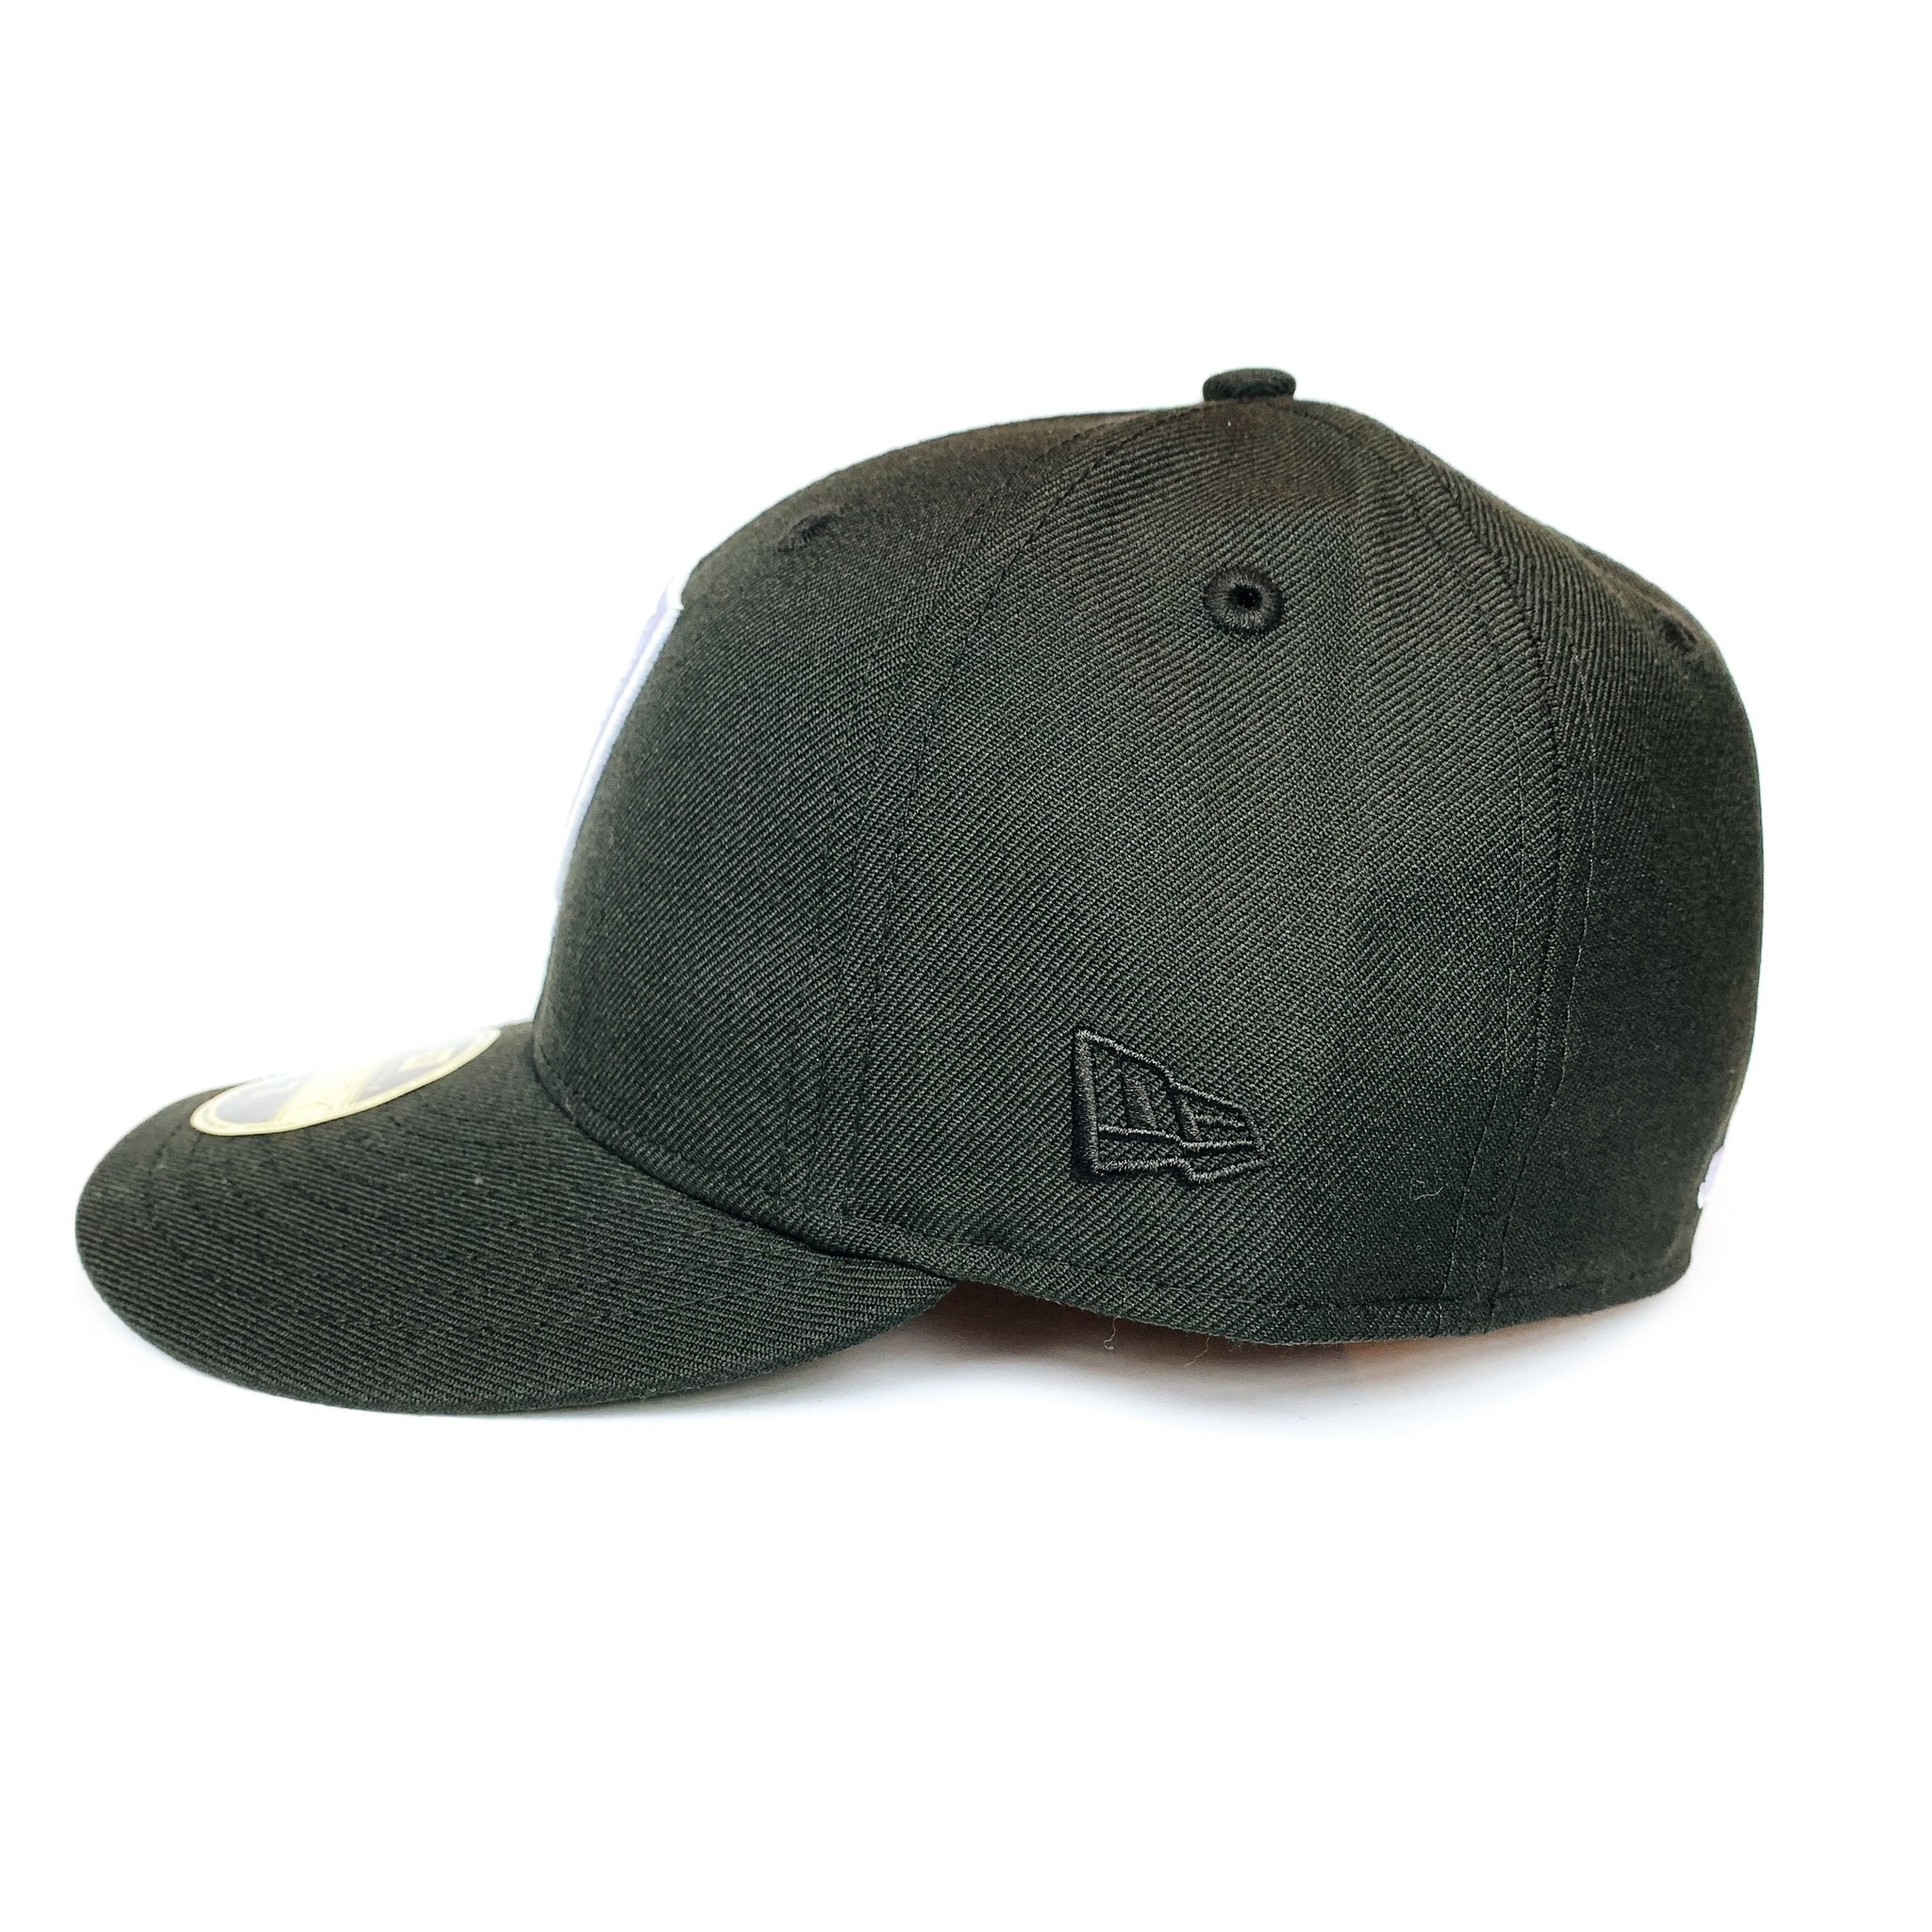 Jugrnaut Jugrnaut x New Era Black size